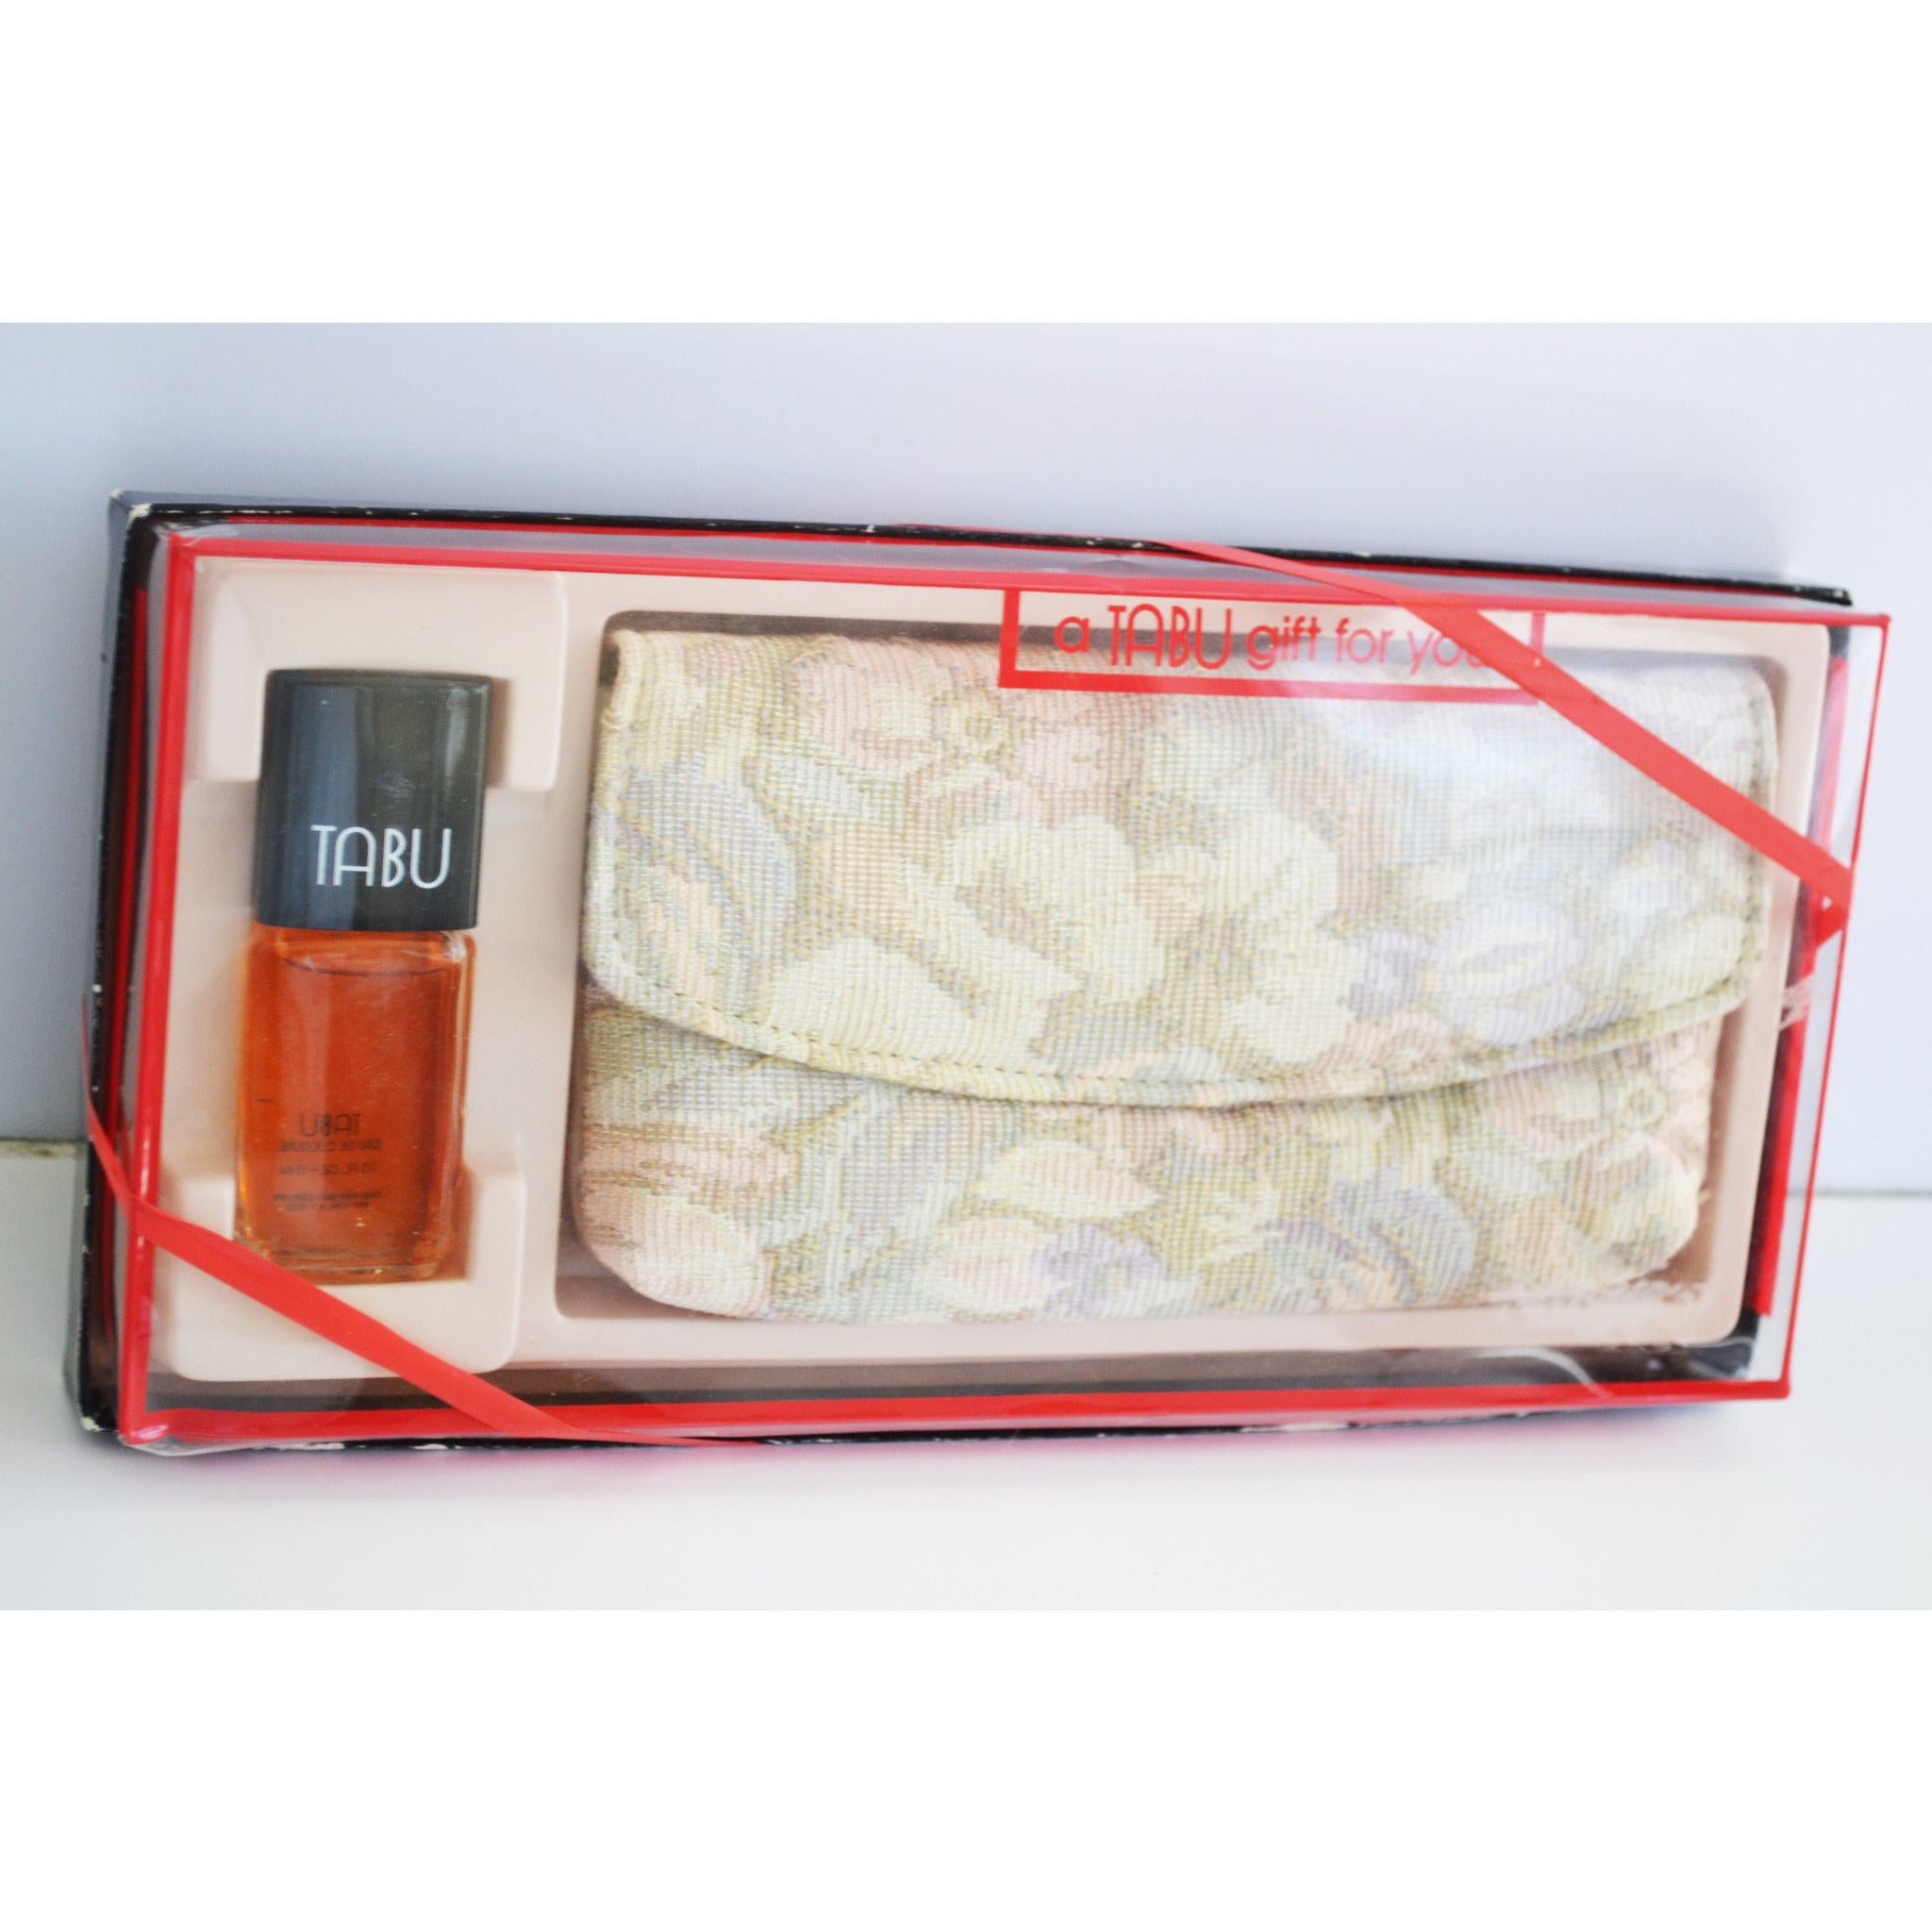 Vintage Tabu Cologne & Wallet Set By Dana